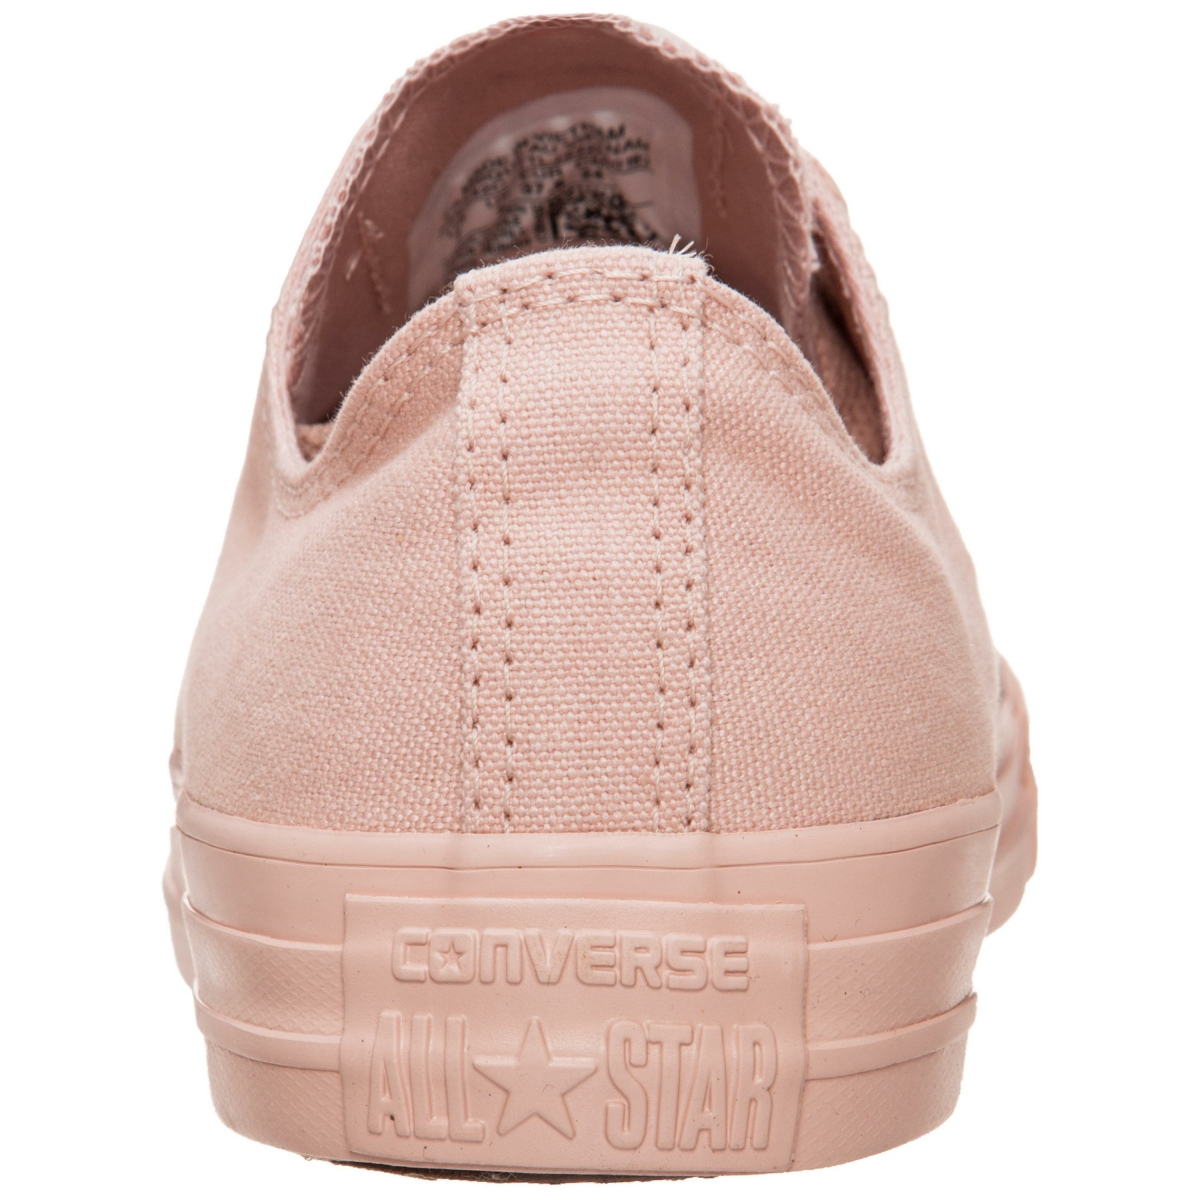 d5f13c229ddb3a Converse Chuck Taylor All Star Mono Ox Glam in pink - 559942C ...